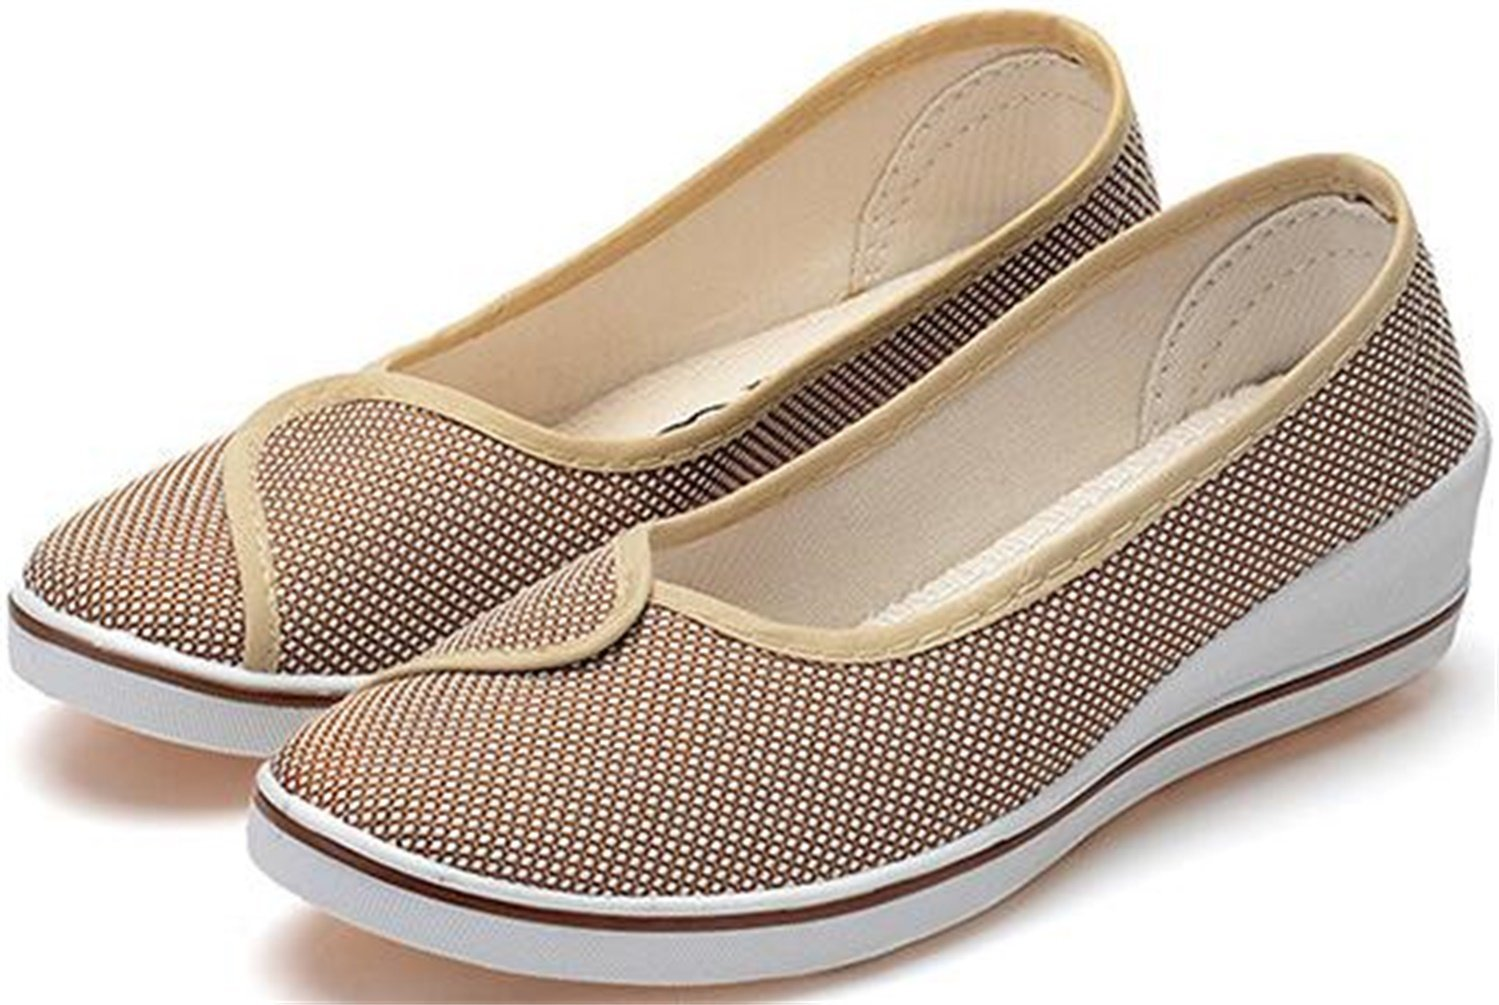 PPXID Women's Canvas Wedge Slip On Loafers Dancing Shoes-Beige 7.5 US Size by PPXID (Image #3)